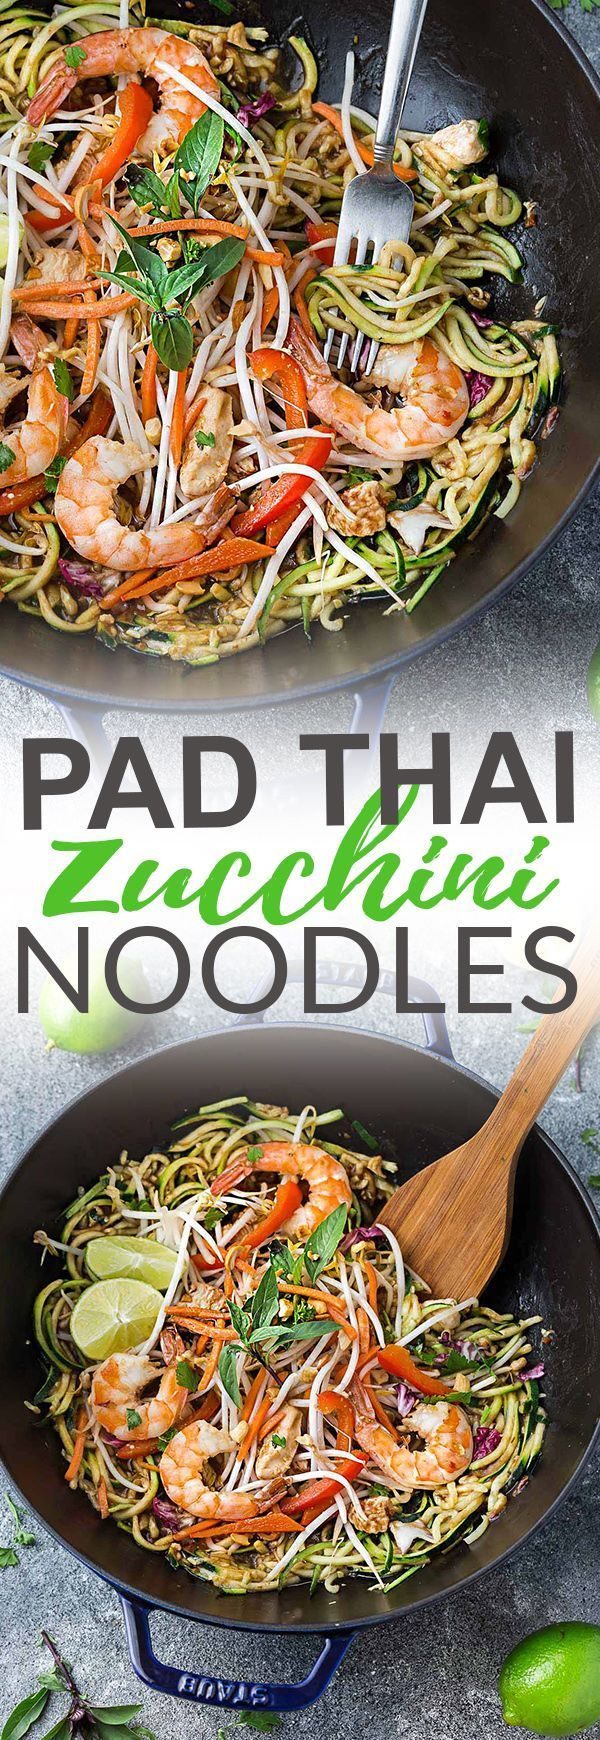 This recipe for Pad Thai Zucchini Noodles (Zoodles) is the perfect easy 30 minute one pan stir-fry meal. Best of all, it's full of all the authentic flavors of the popular restaurant favorite in a grain free version. So delicious and way better and health